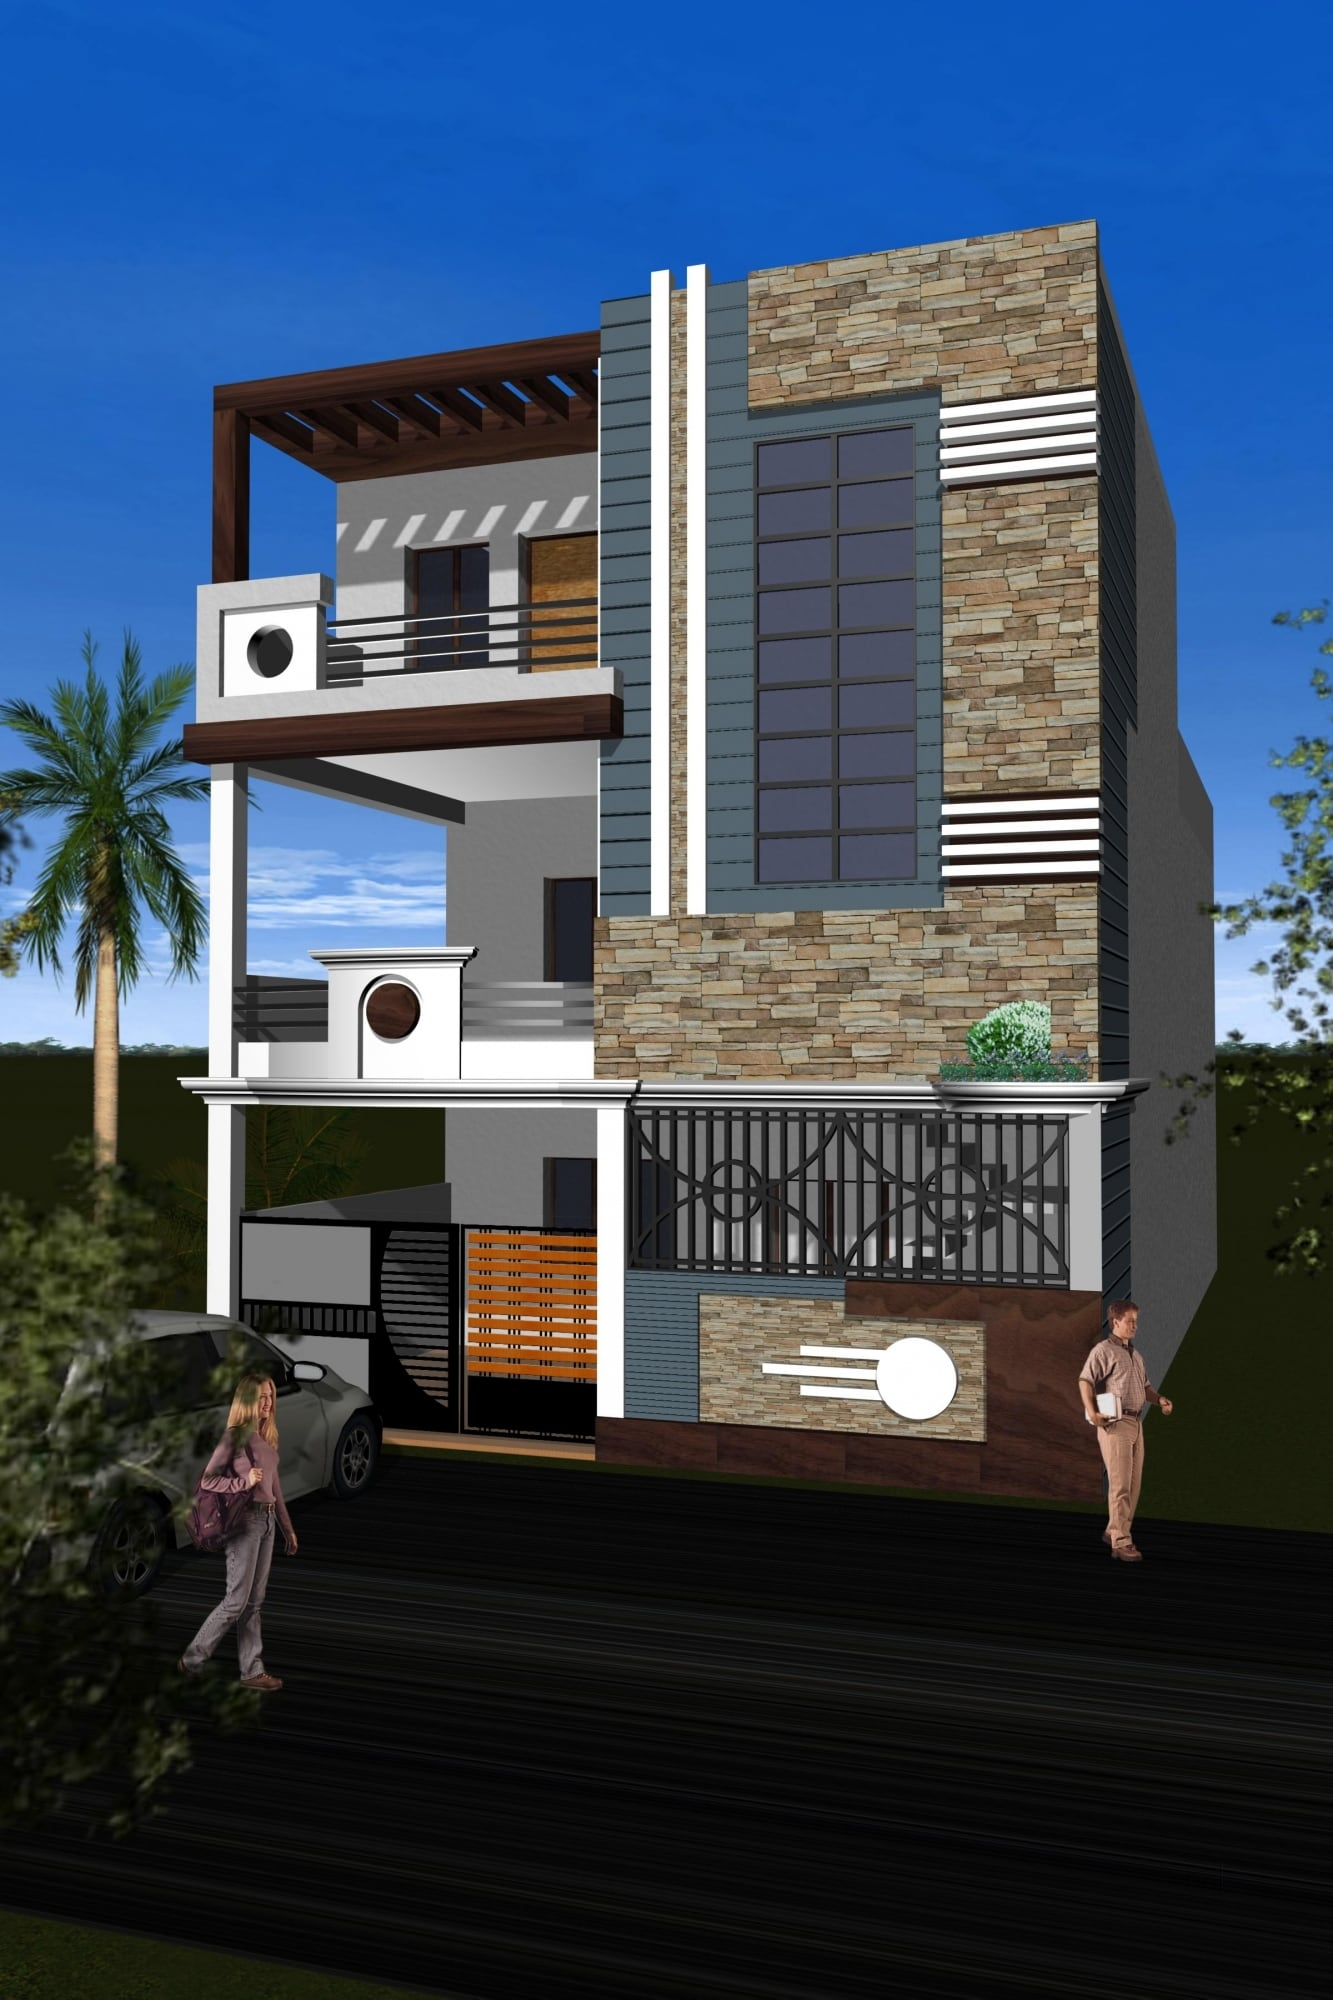 Top Property Valuers in Jabalpur - Best Land Valuation Services